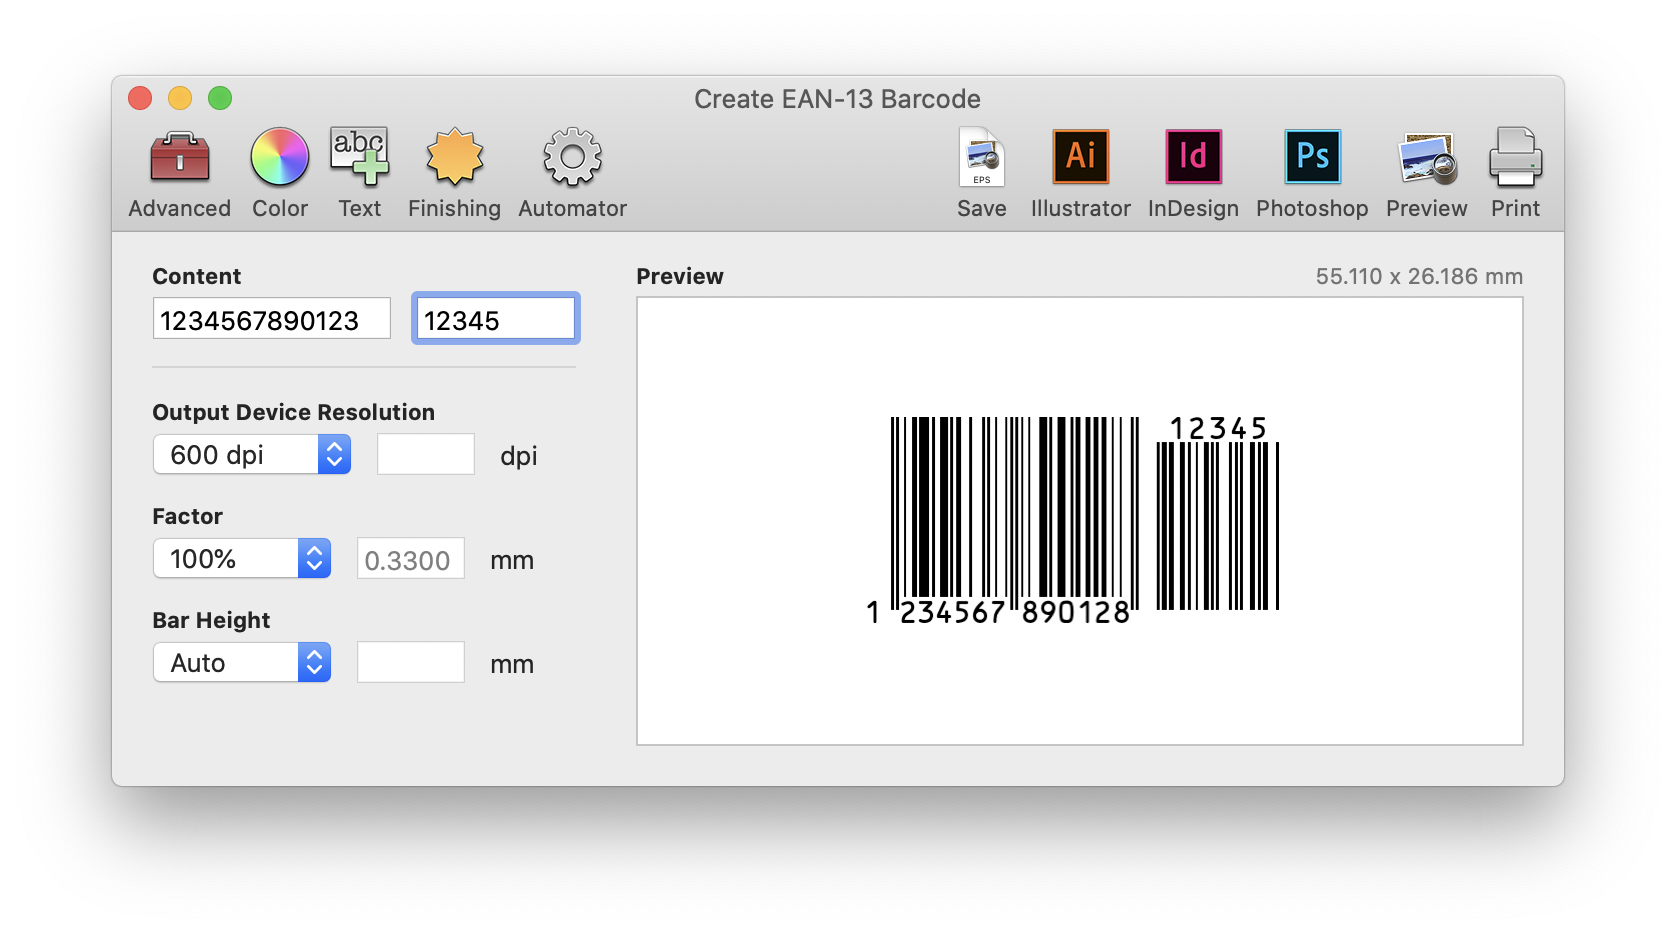 Barcode Producer Create EAN-13 Barcode window with live preview of a barcode based on the Content field